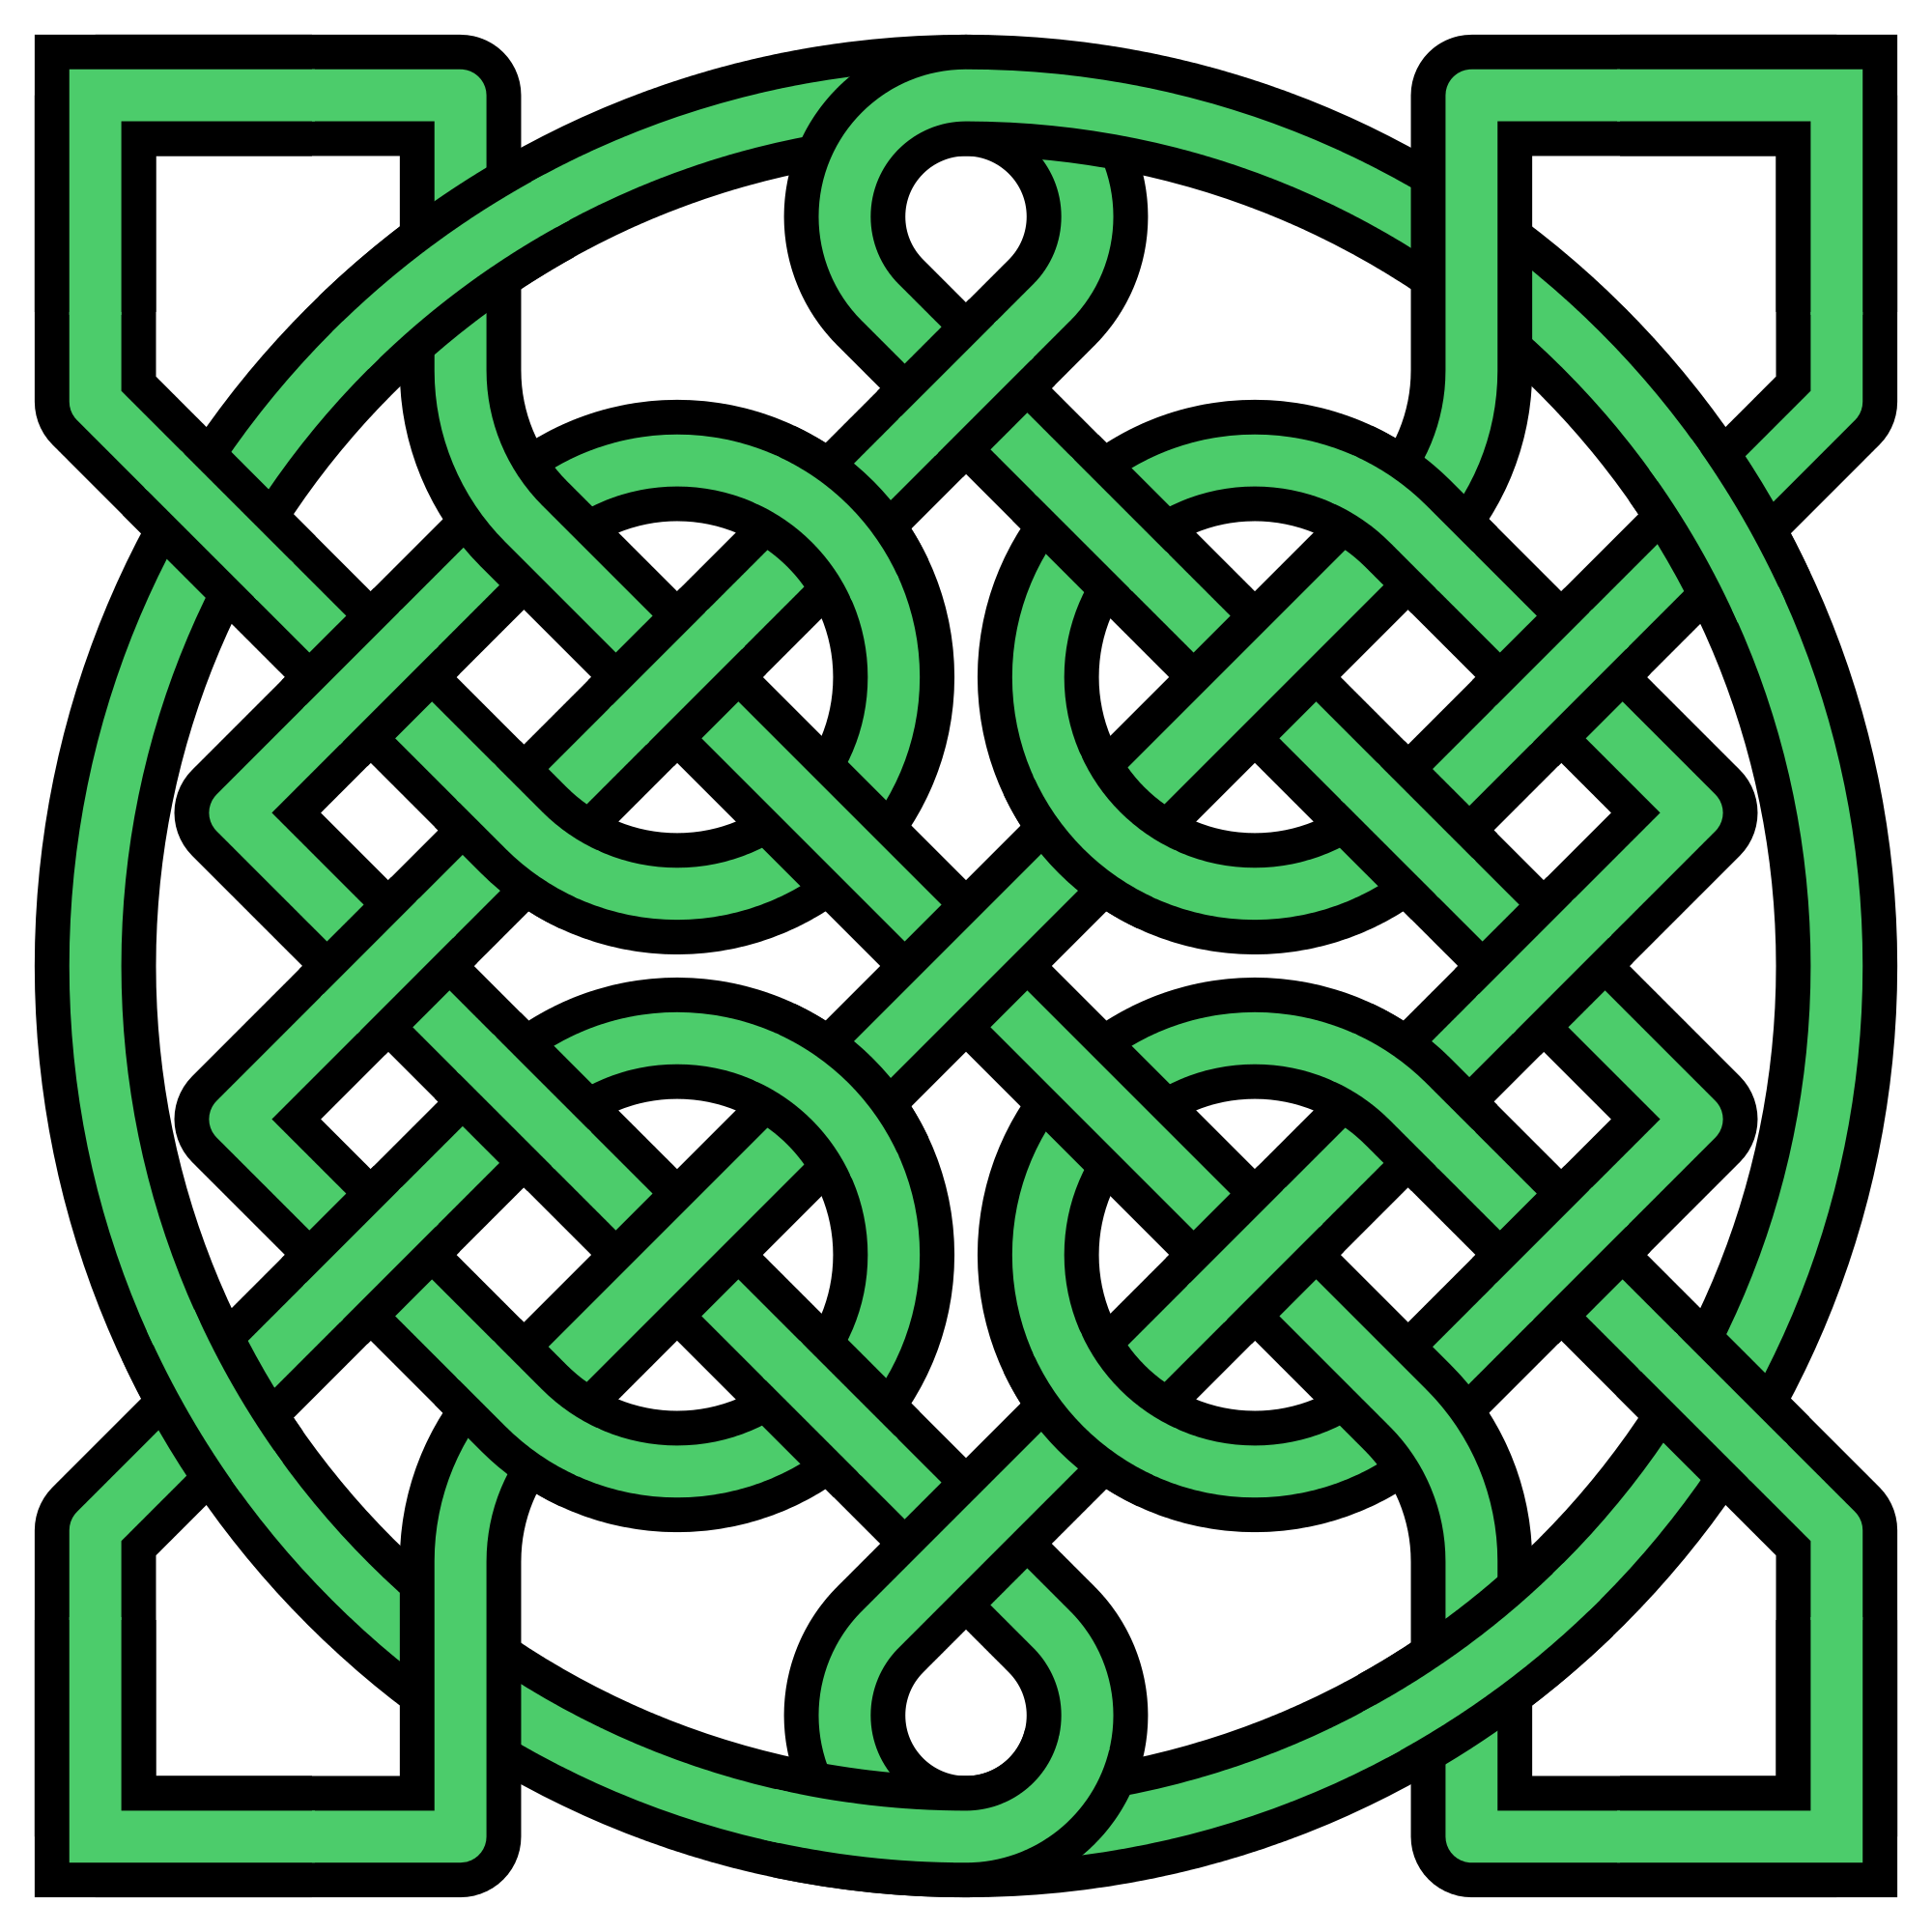 Green celtic cross png. File knot insquare crossings